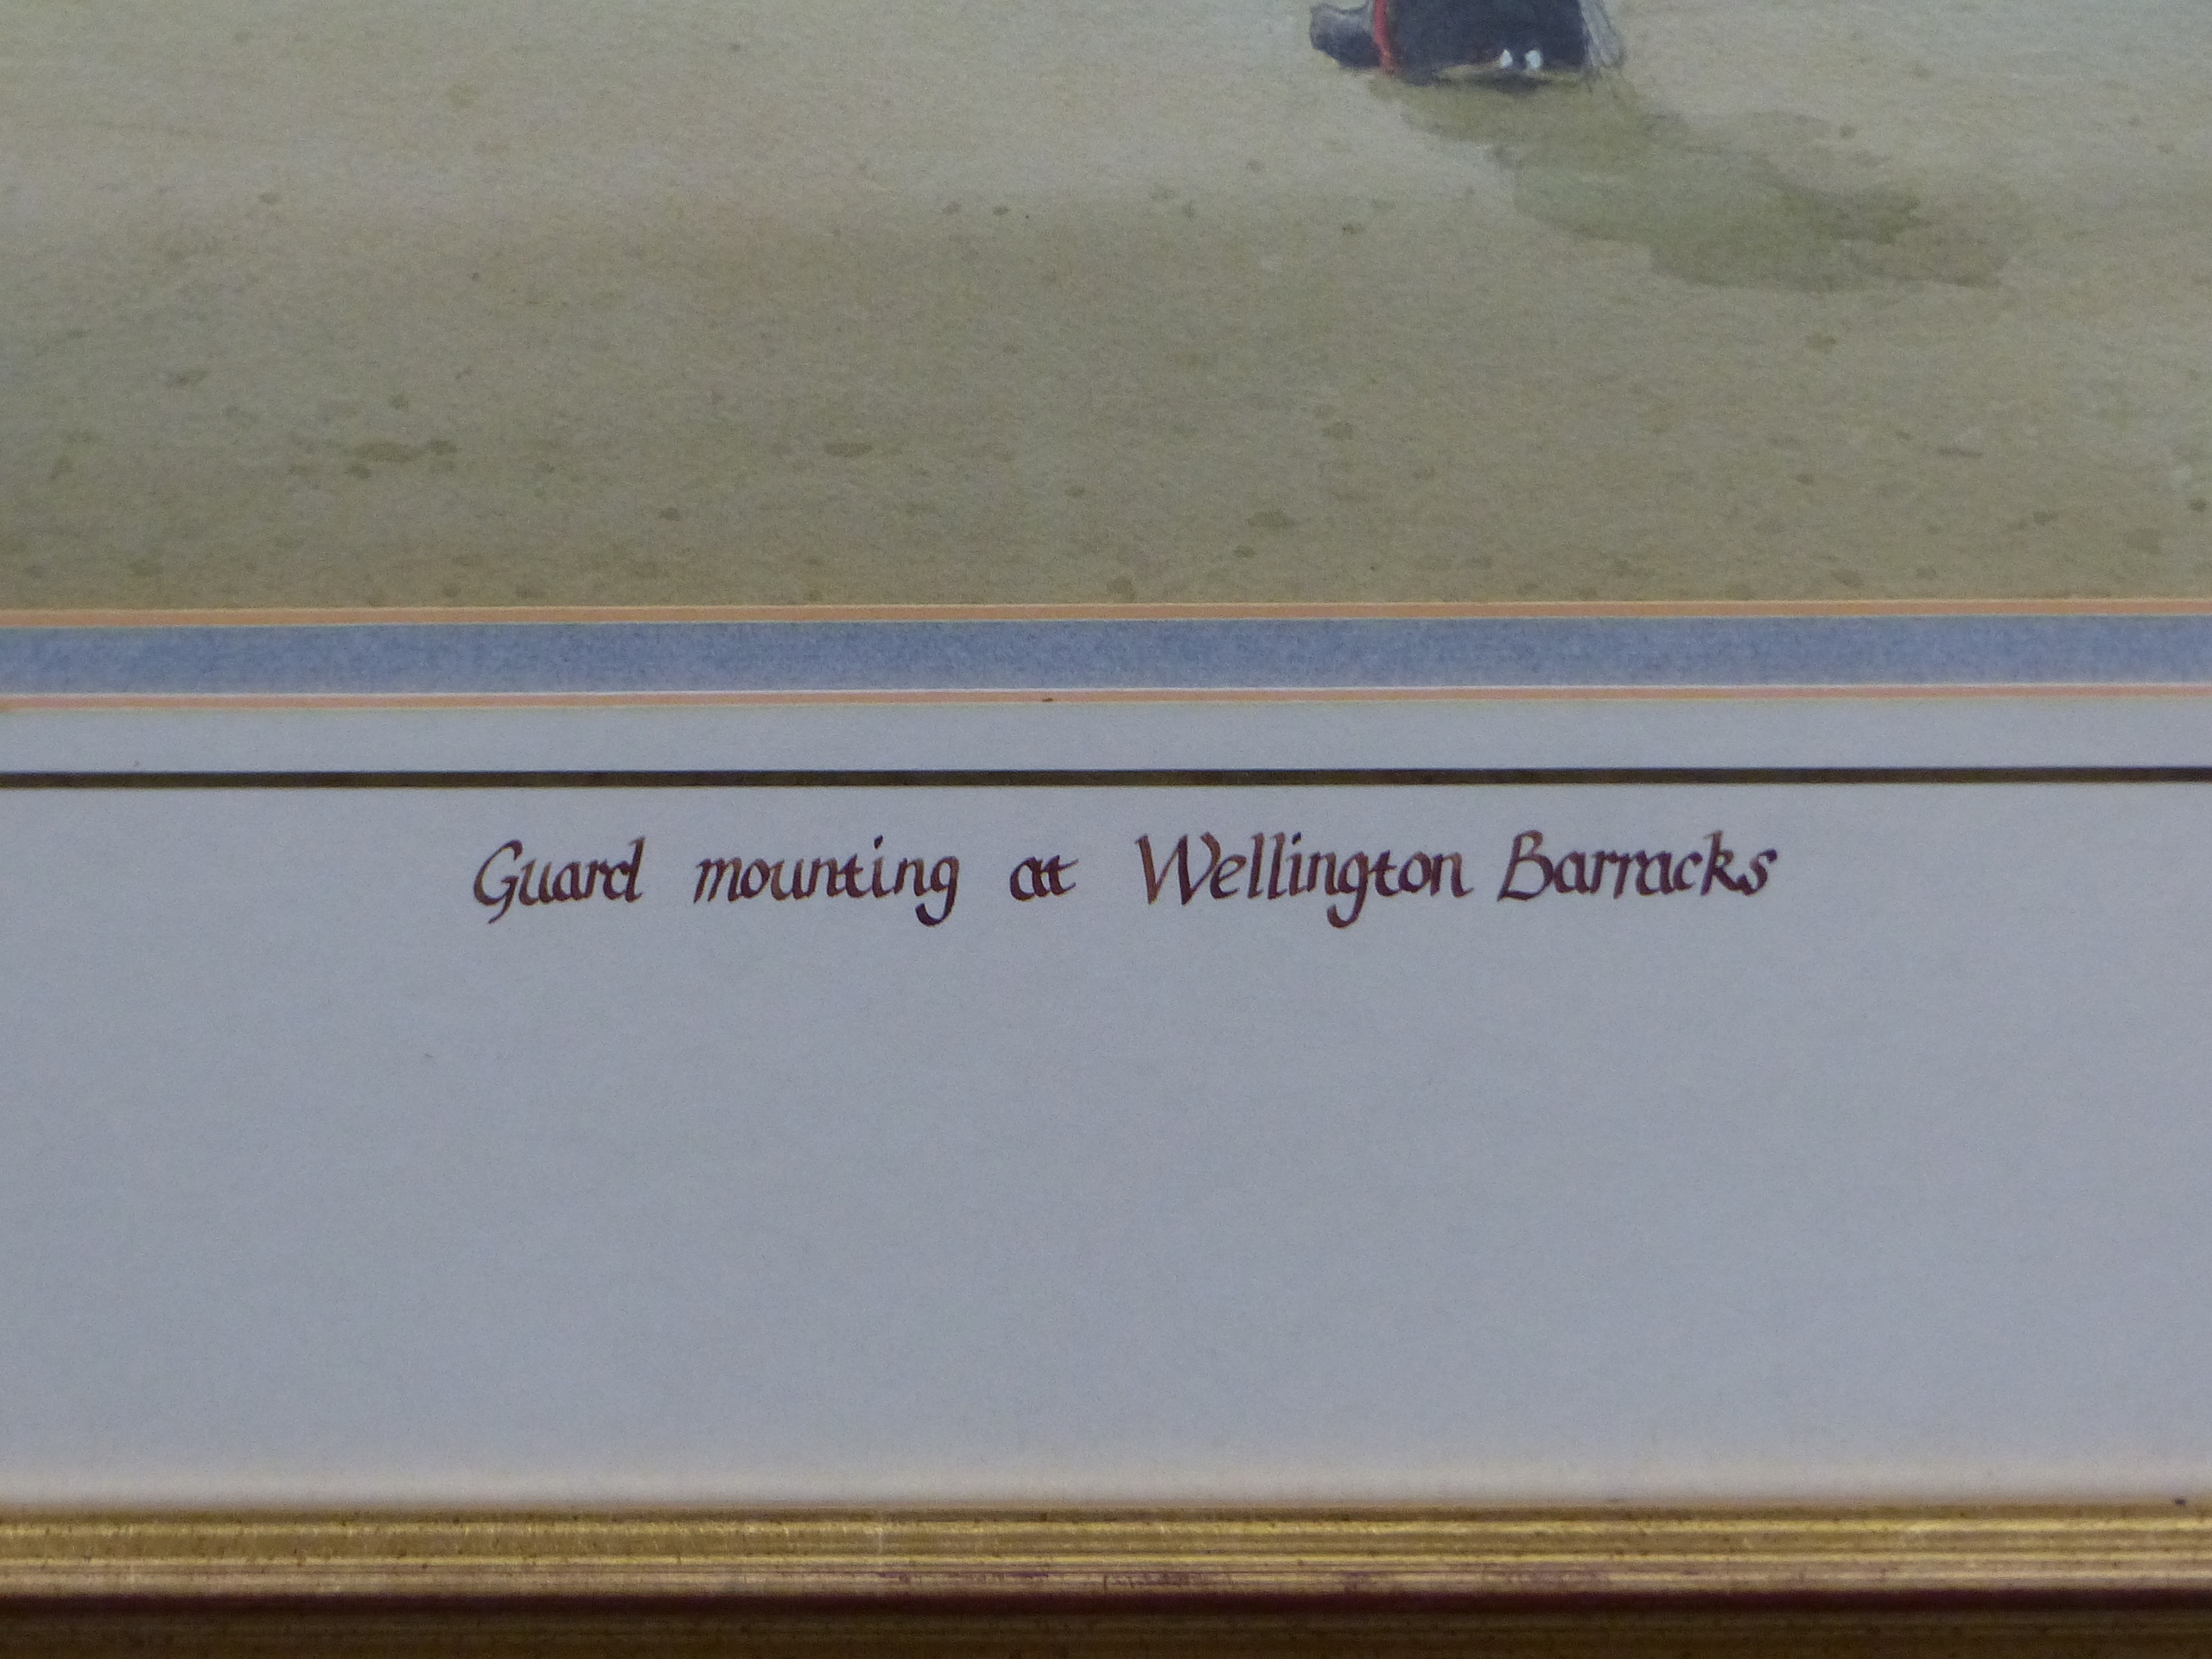 D.J CURTIS (1948 - ) ARR. GUARD MOUNTING AT WELLINGTON BARRACKS. SIGNED WATERCOLOUR GALLERY LABEL - Image 4 of 7